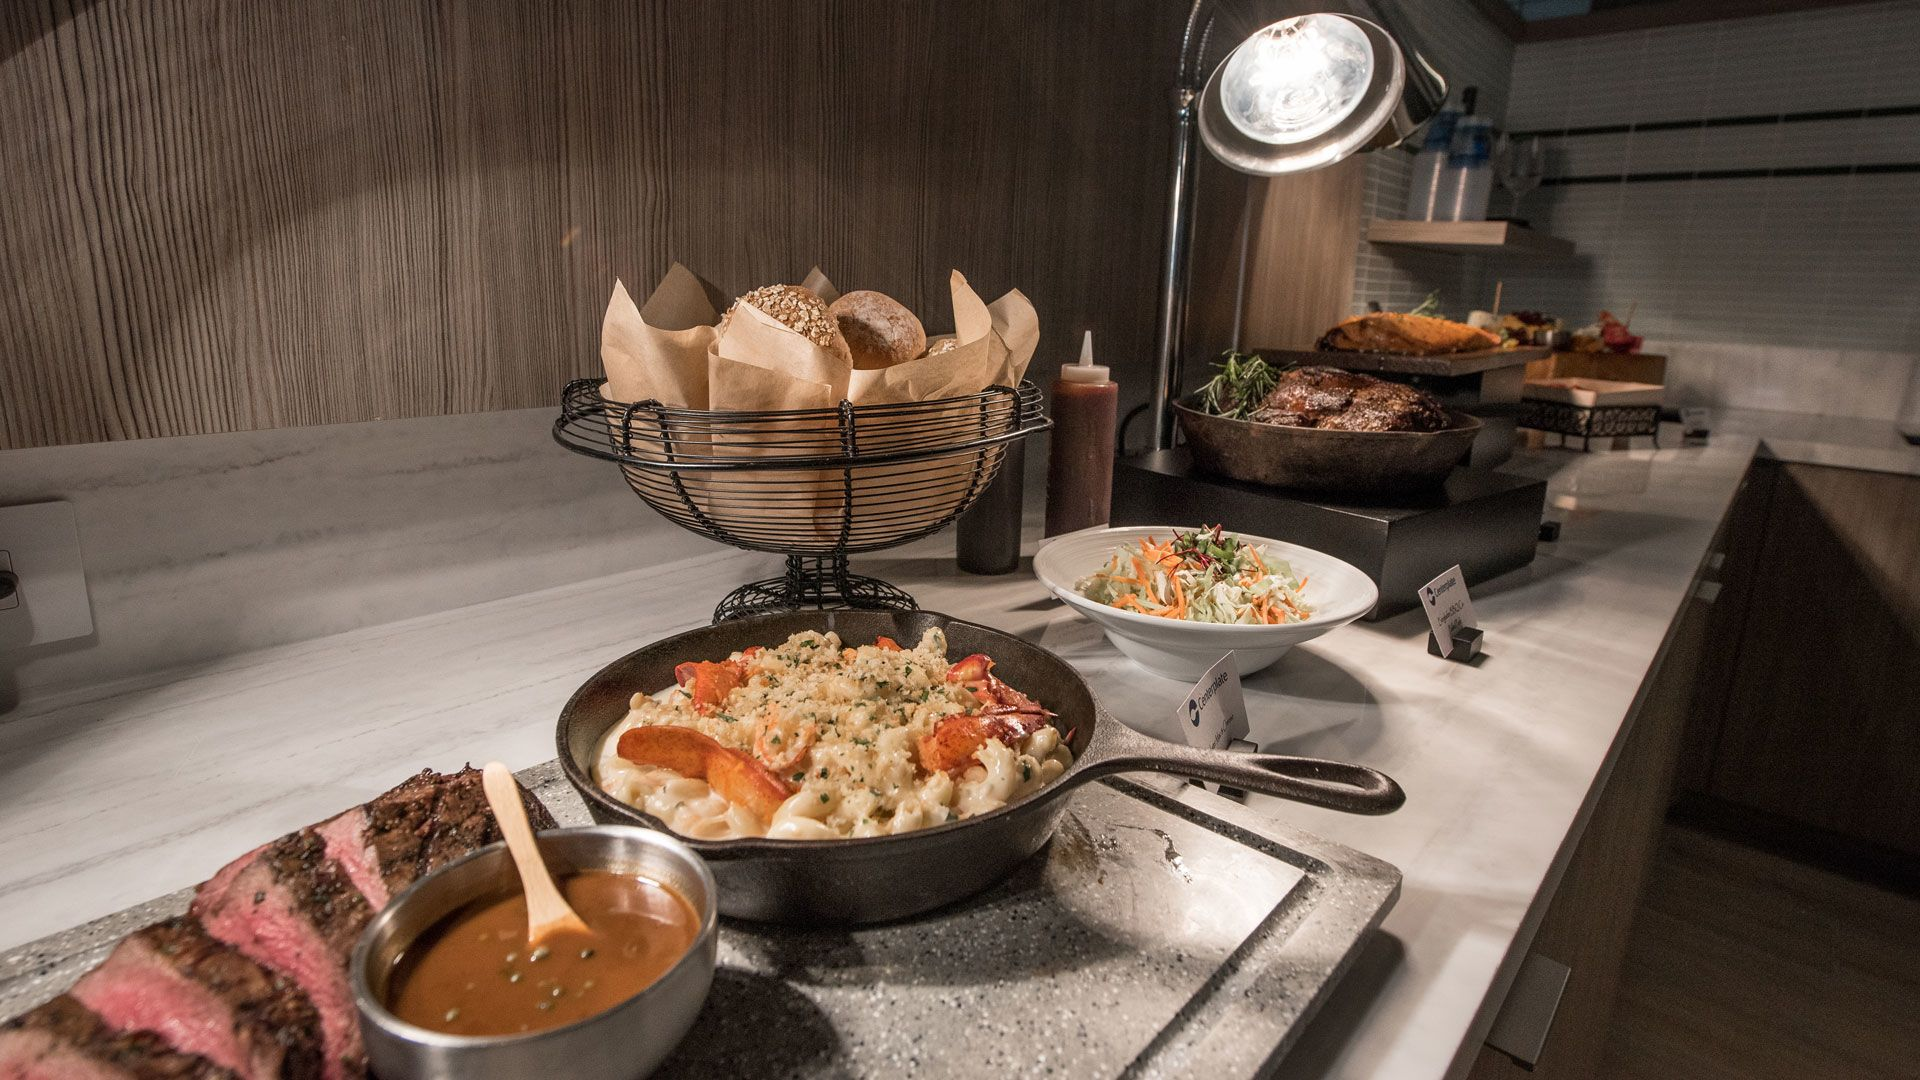 Suites Photo: Food Spread Including Steak, Lobster Macaroni and Cheese and more